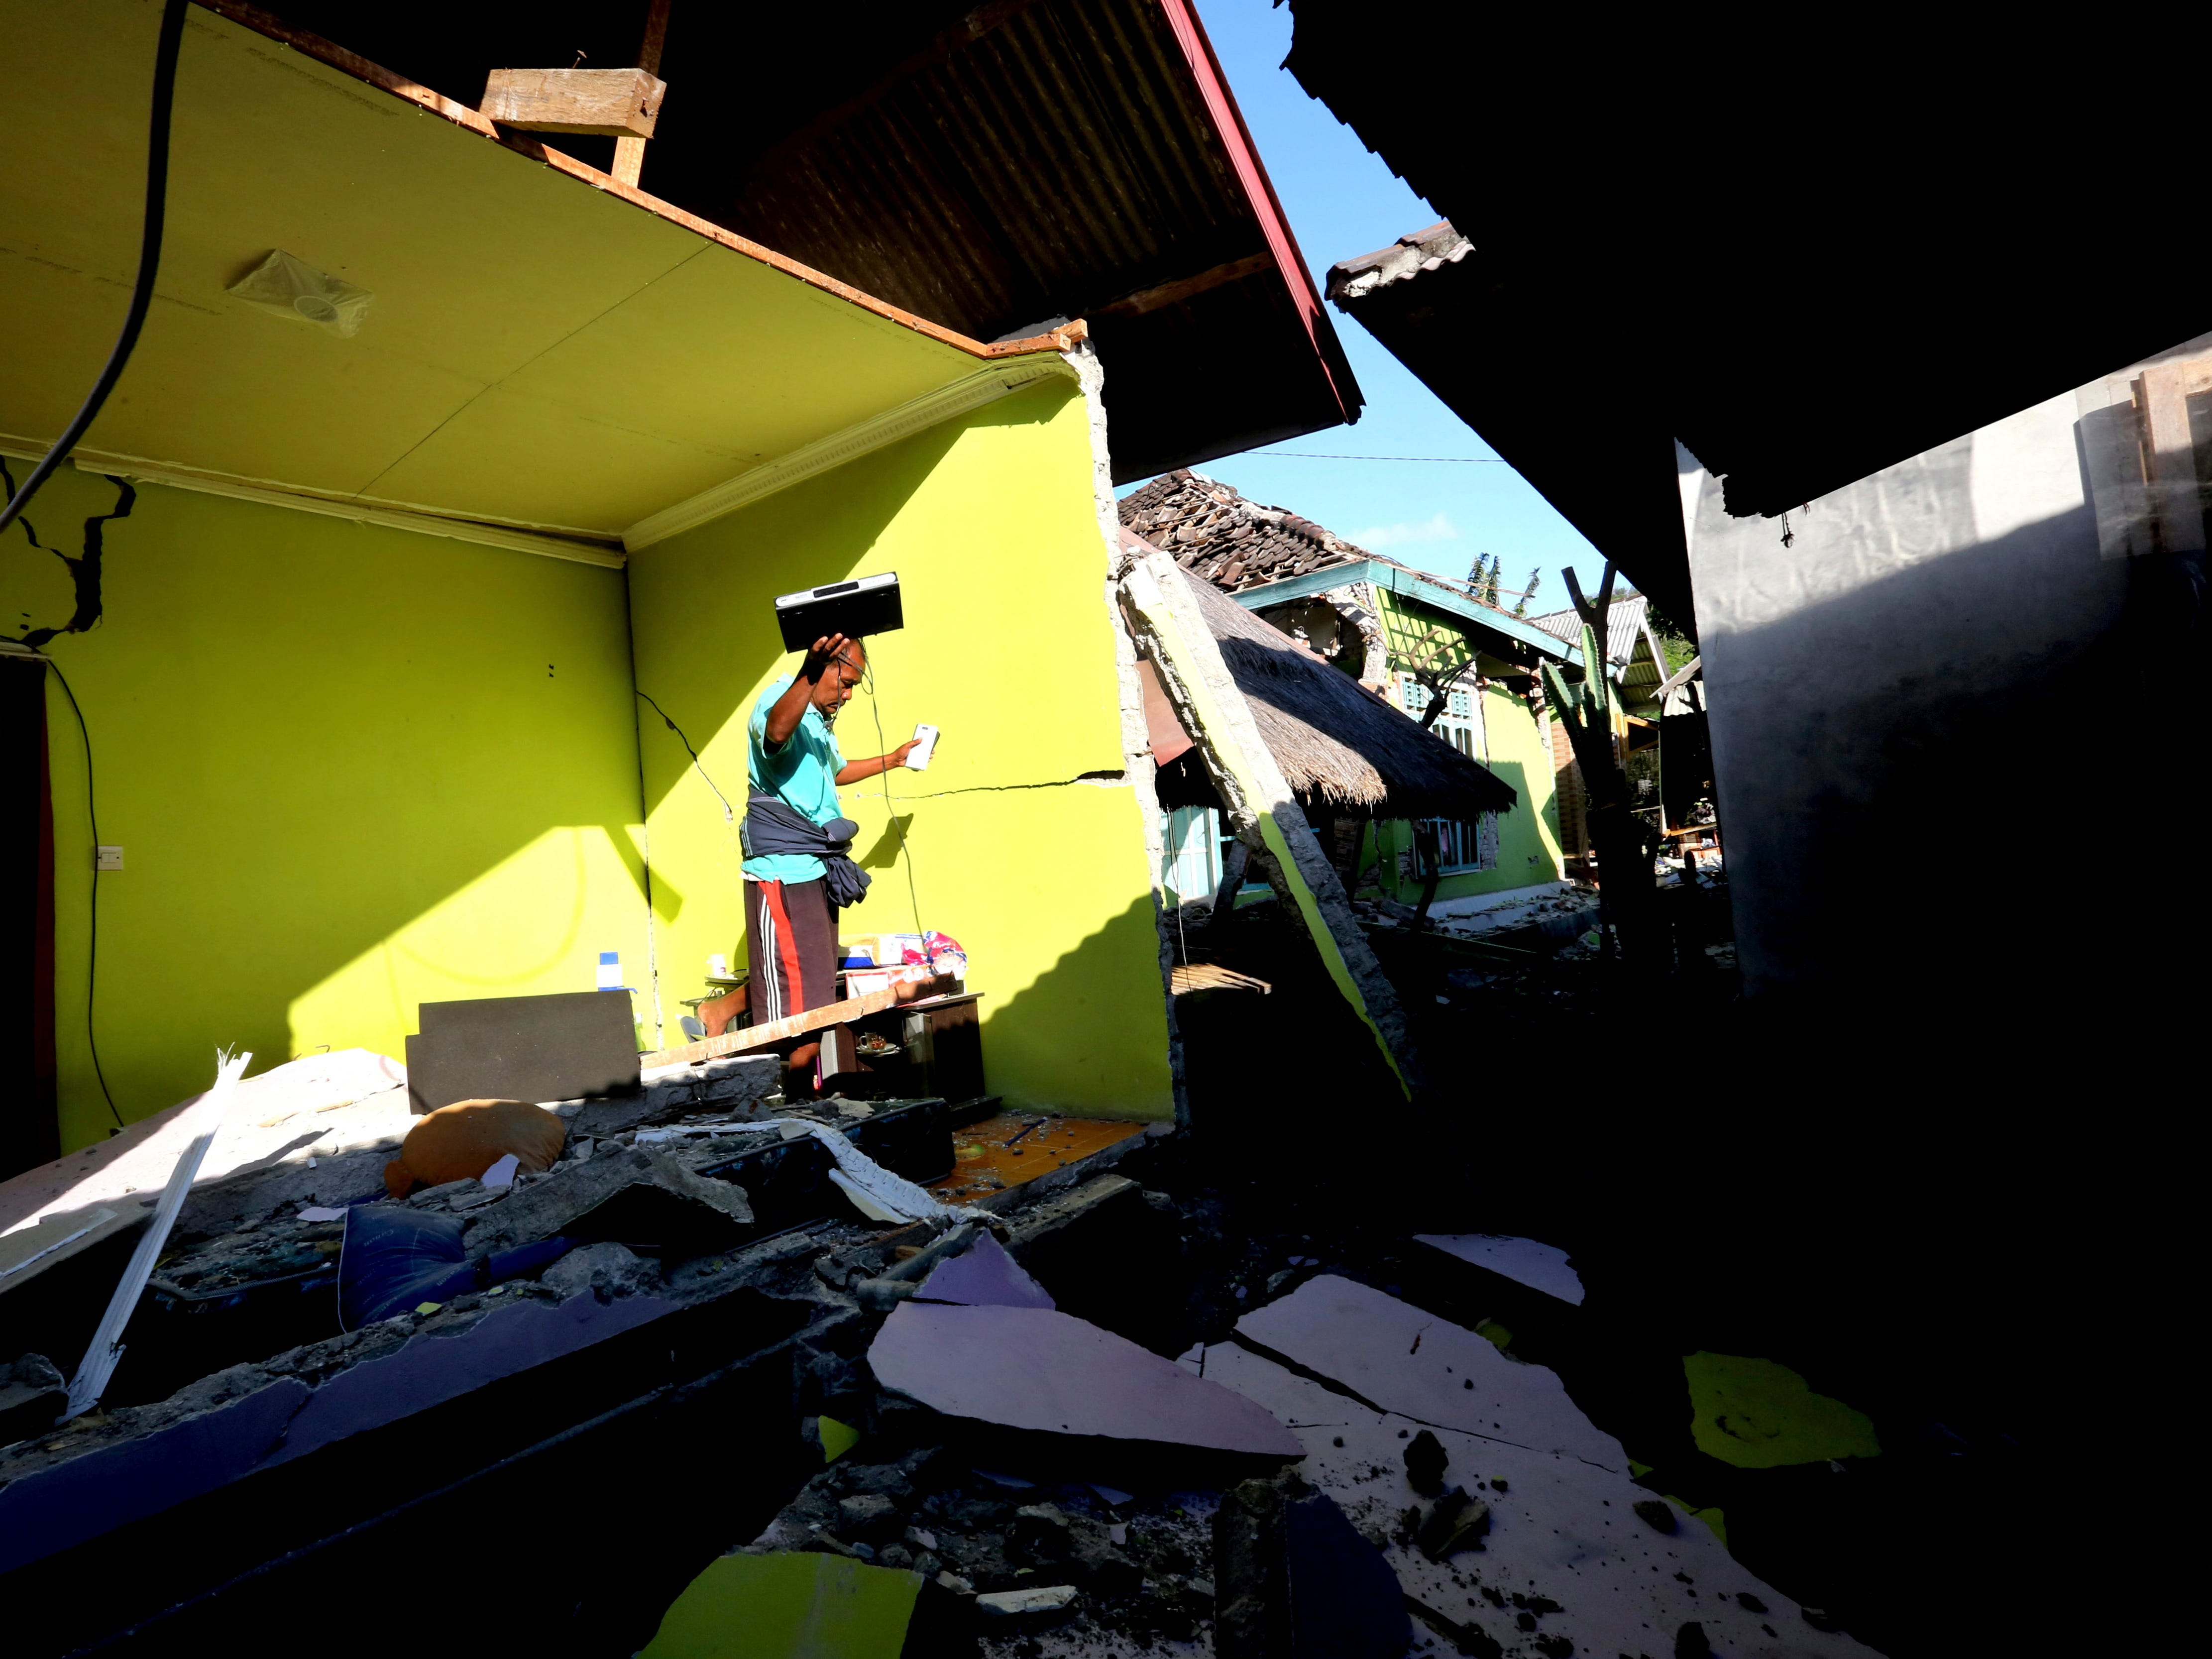 Usable items are salvaged from a home destroyed in an earthquake in North Lombok, Indonesia, on Aug. 6, 2018.